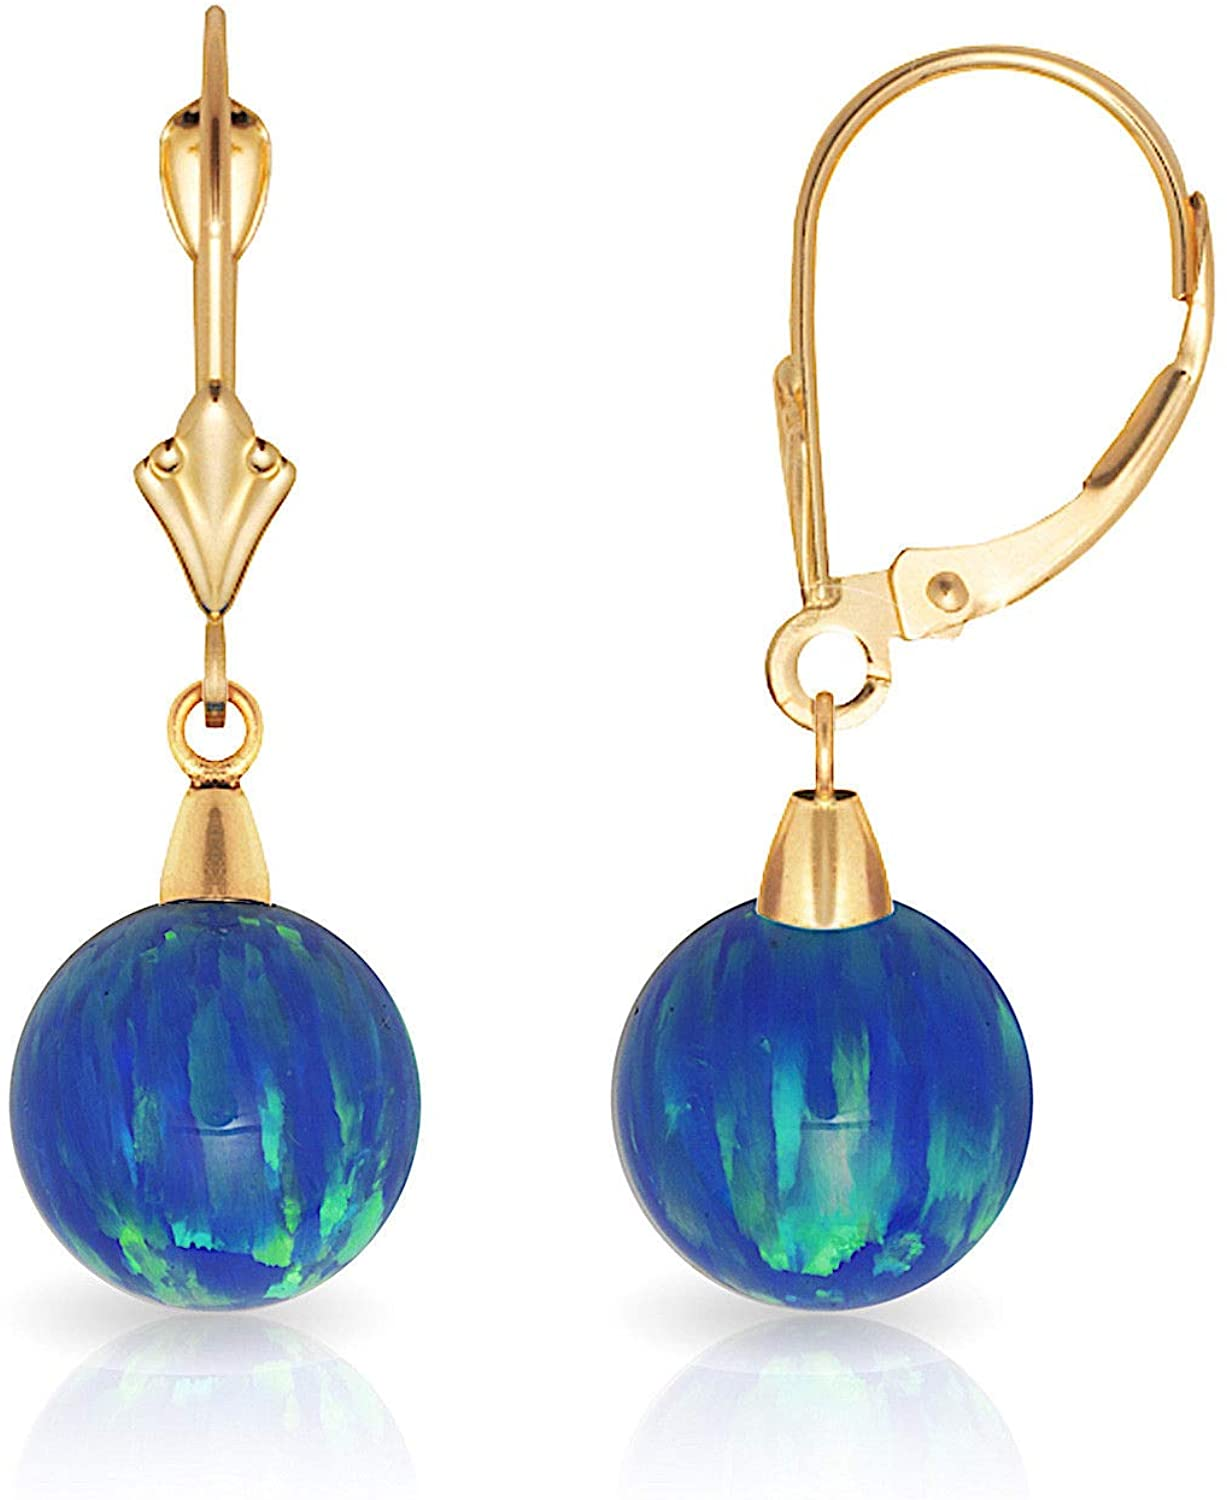 14k Yellow Gold Blue 8x8mm Simulated Opal Ball Drop Leverback Earrings Measures 27x8mm Jewelry Gifts for Women